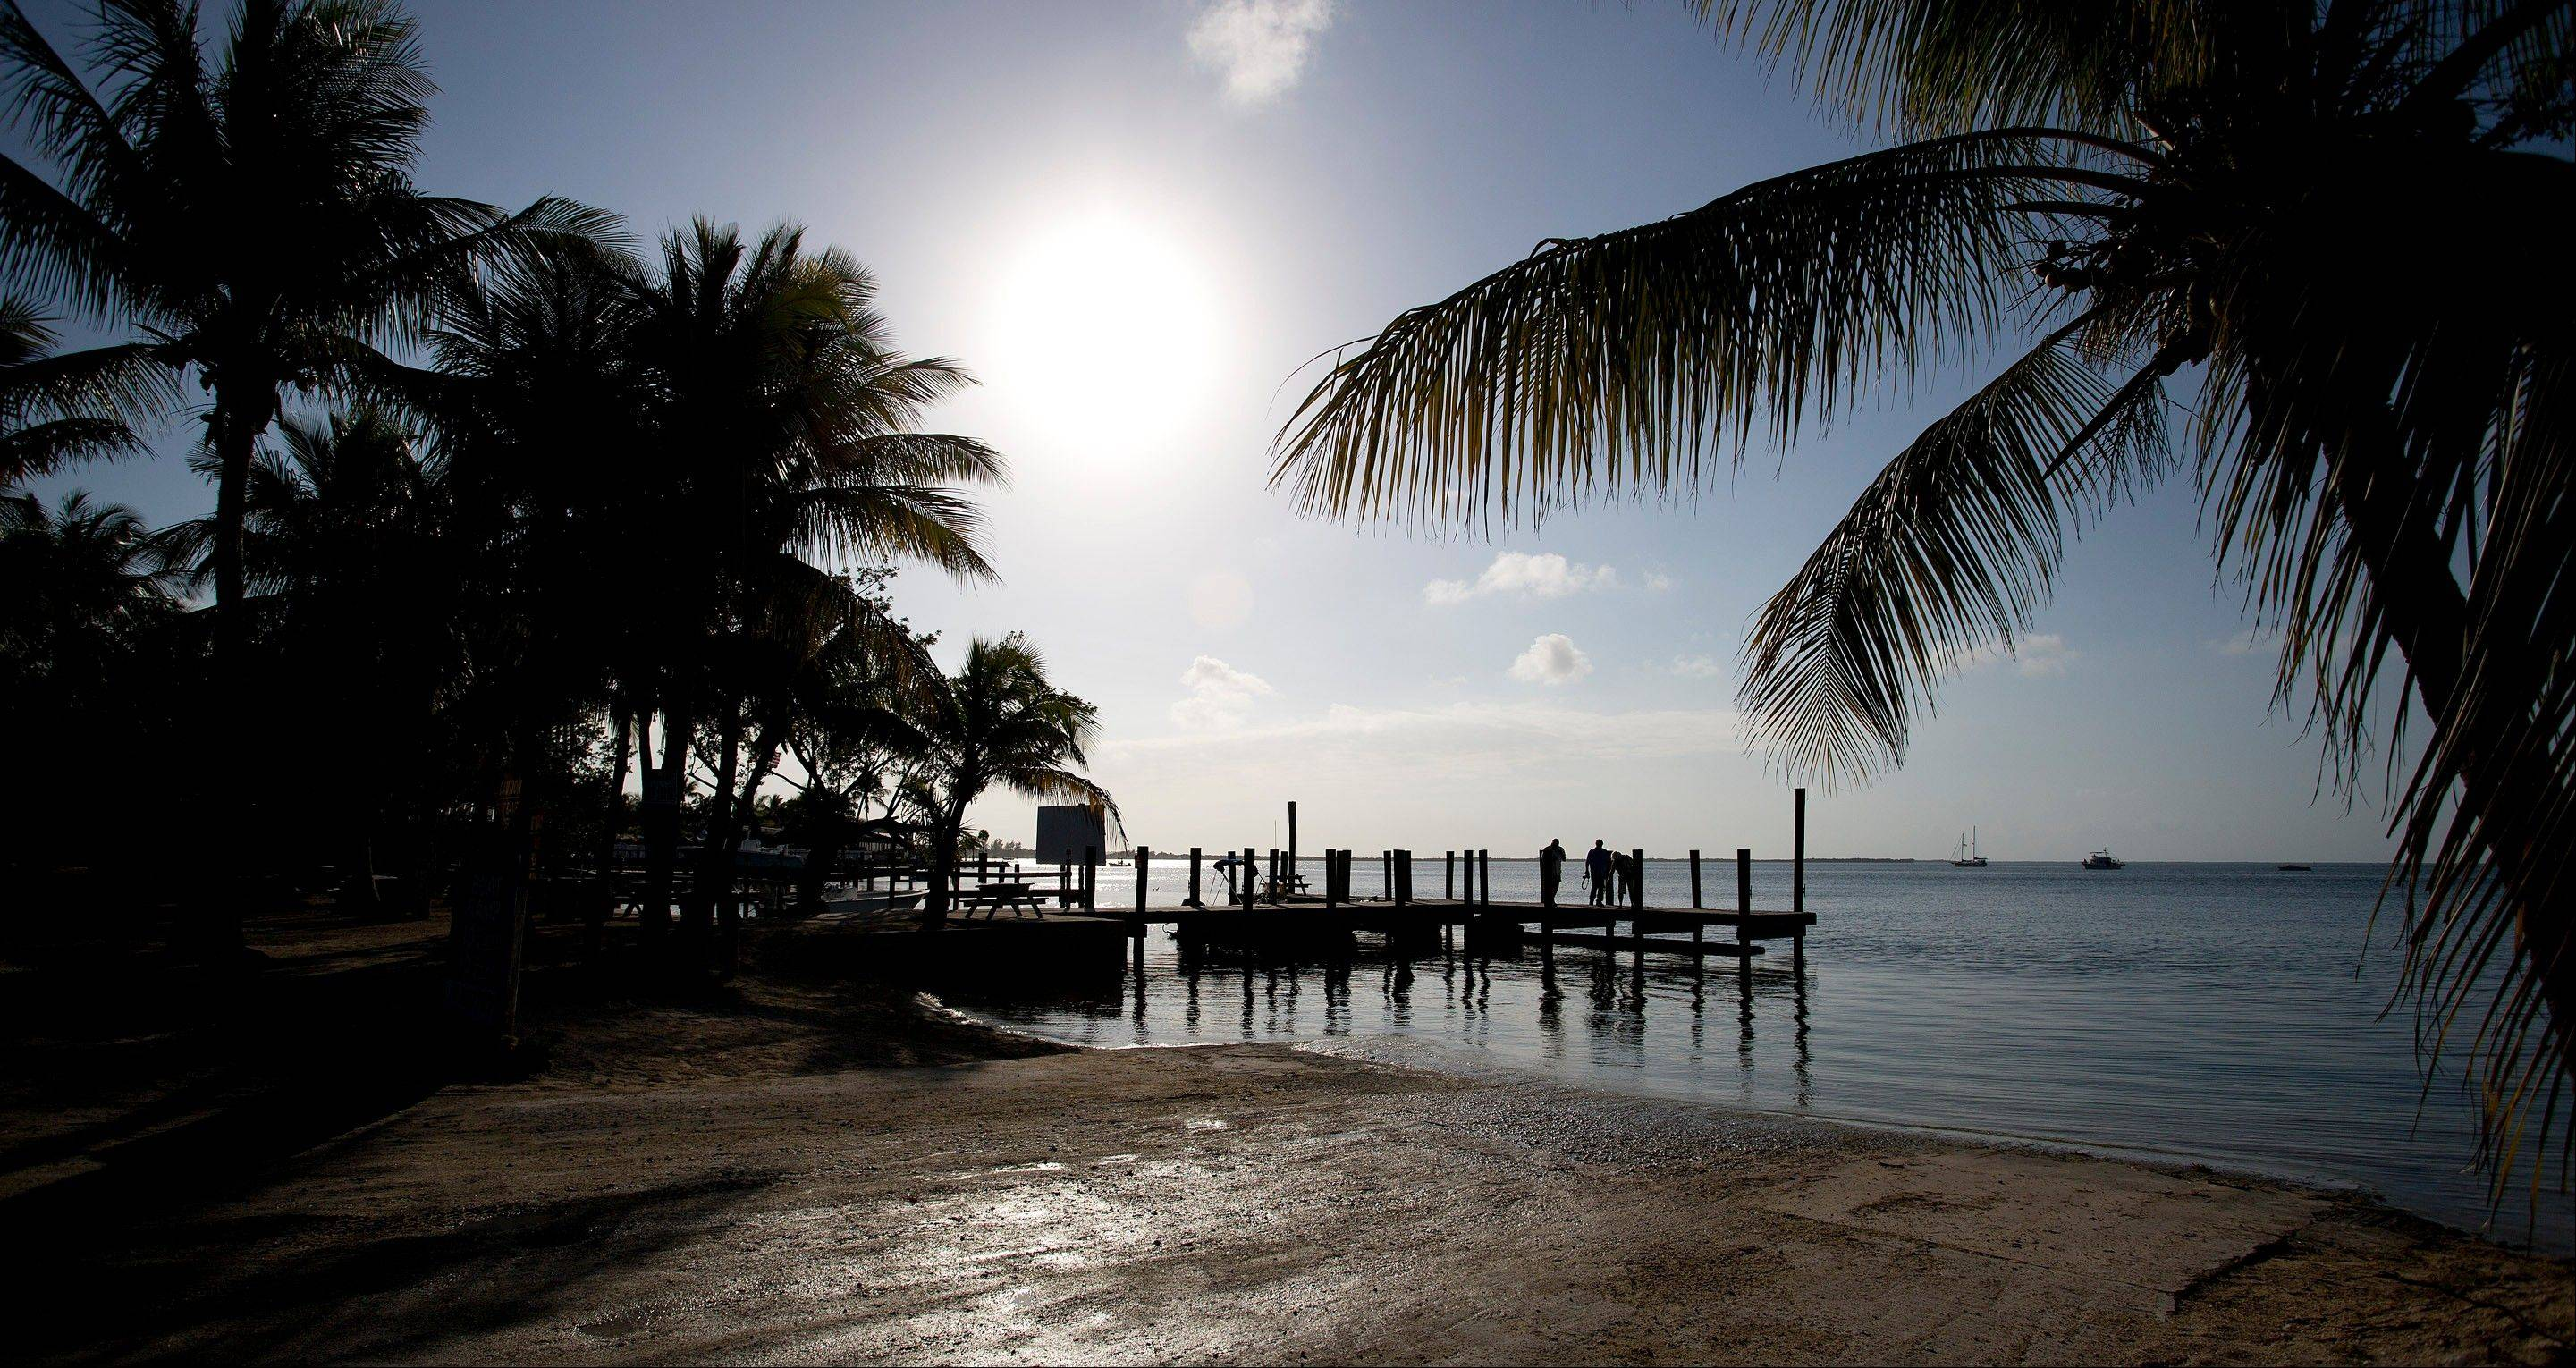 Visitors to Key Largo, Fla., stand on a pier and watch the sunset. If you're heading south into the Keys from the Miami or Fort Lauderdale areas, Key Largo is the first island you hit.